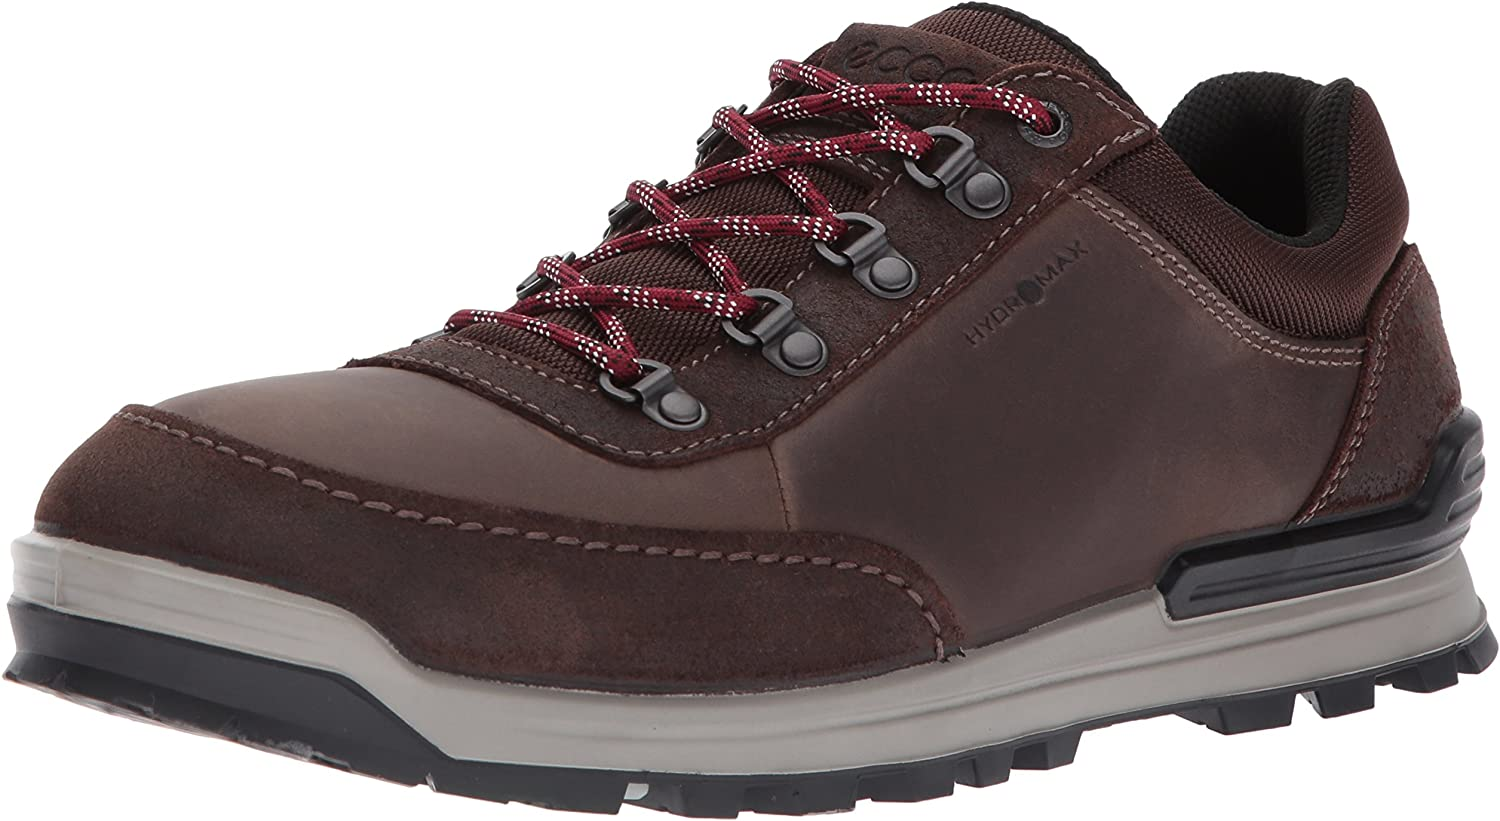 ECCO shoes Mens Oregon Low Backpacking Boots